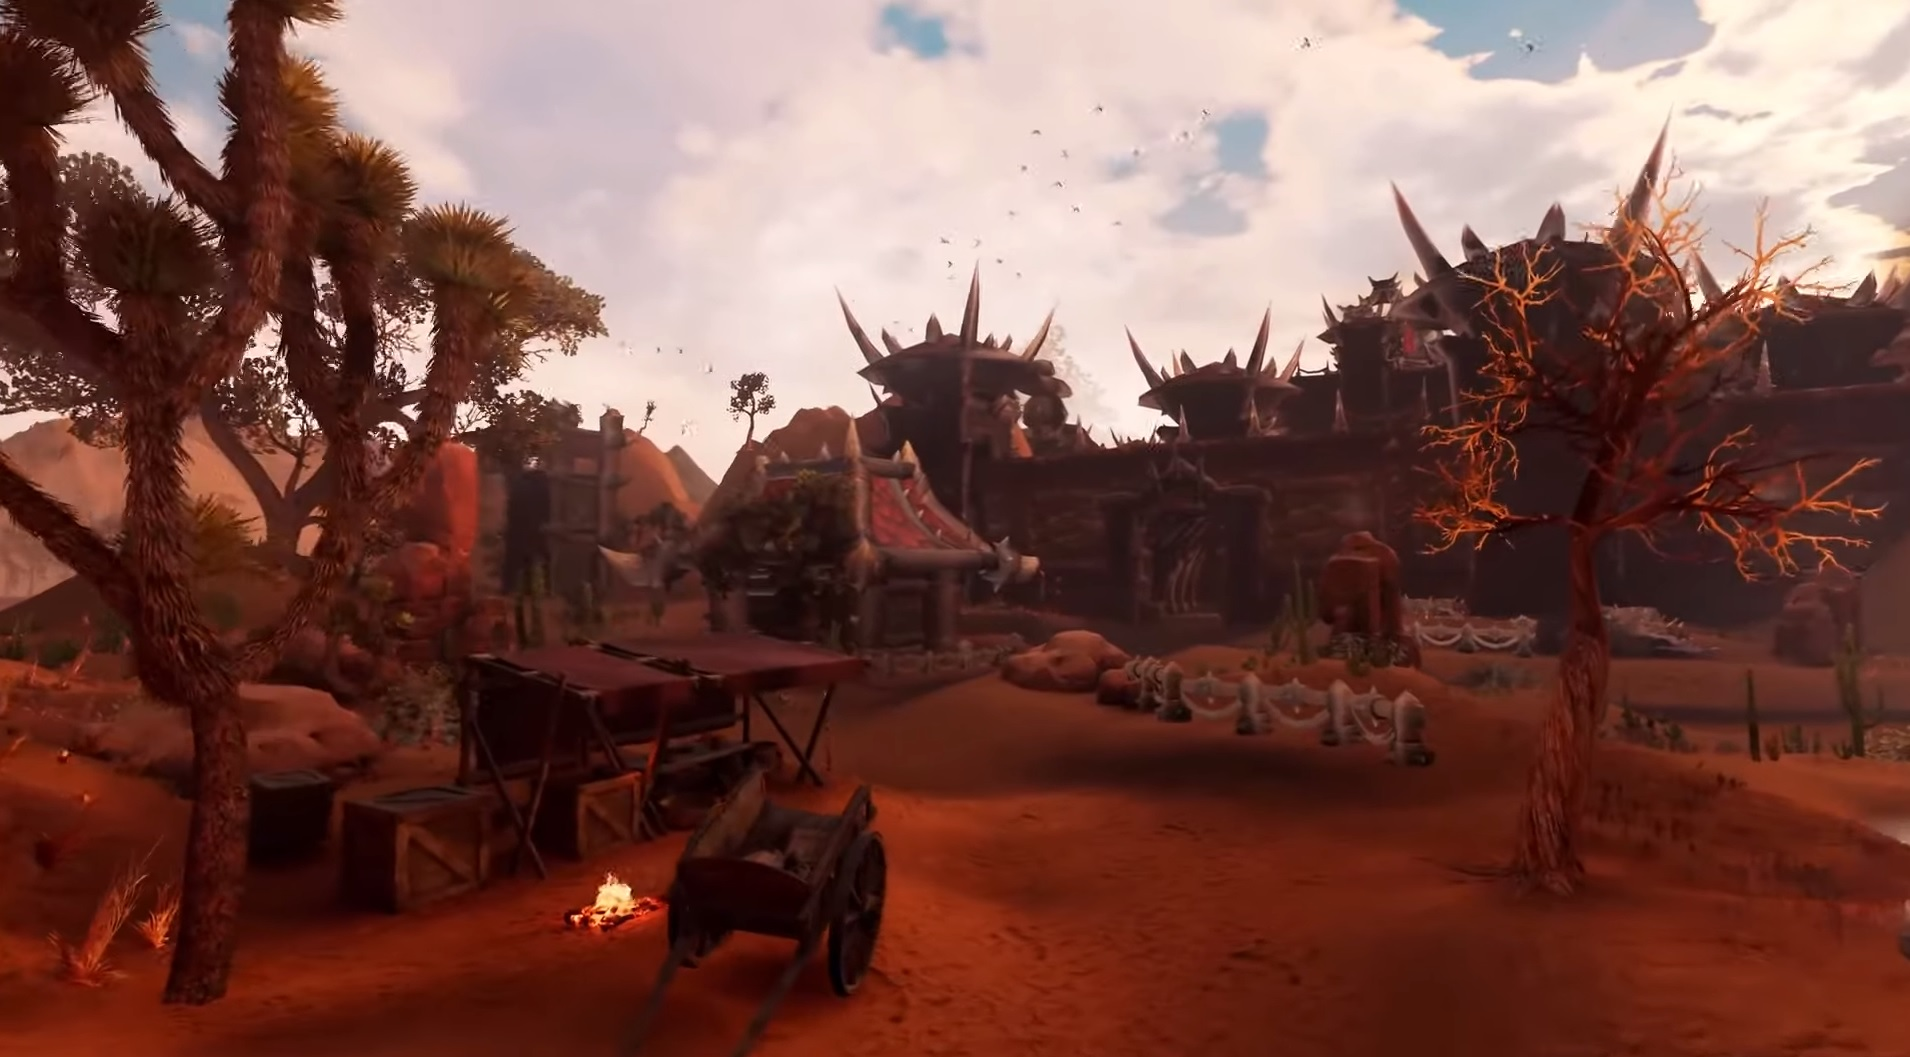 World of Warcraft recreated in Unreal Engine 4 looks great | PC Gamer